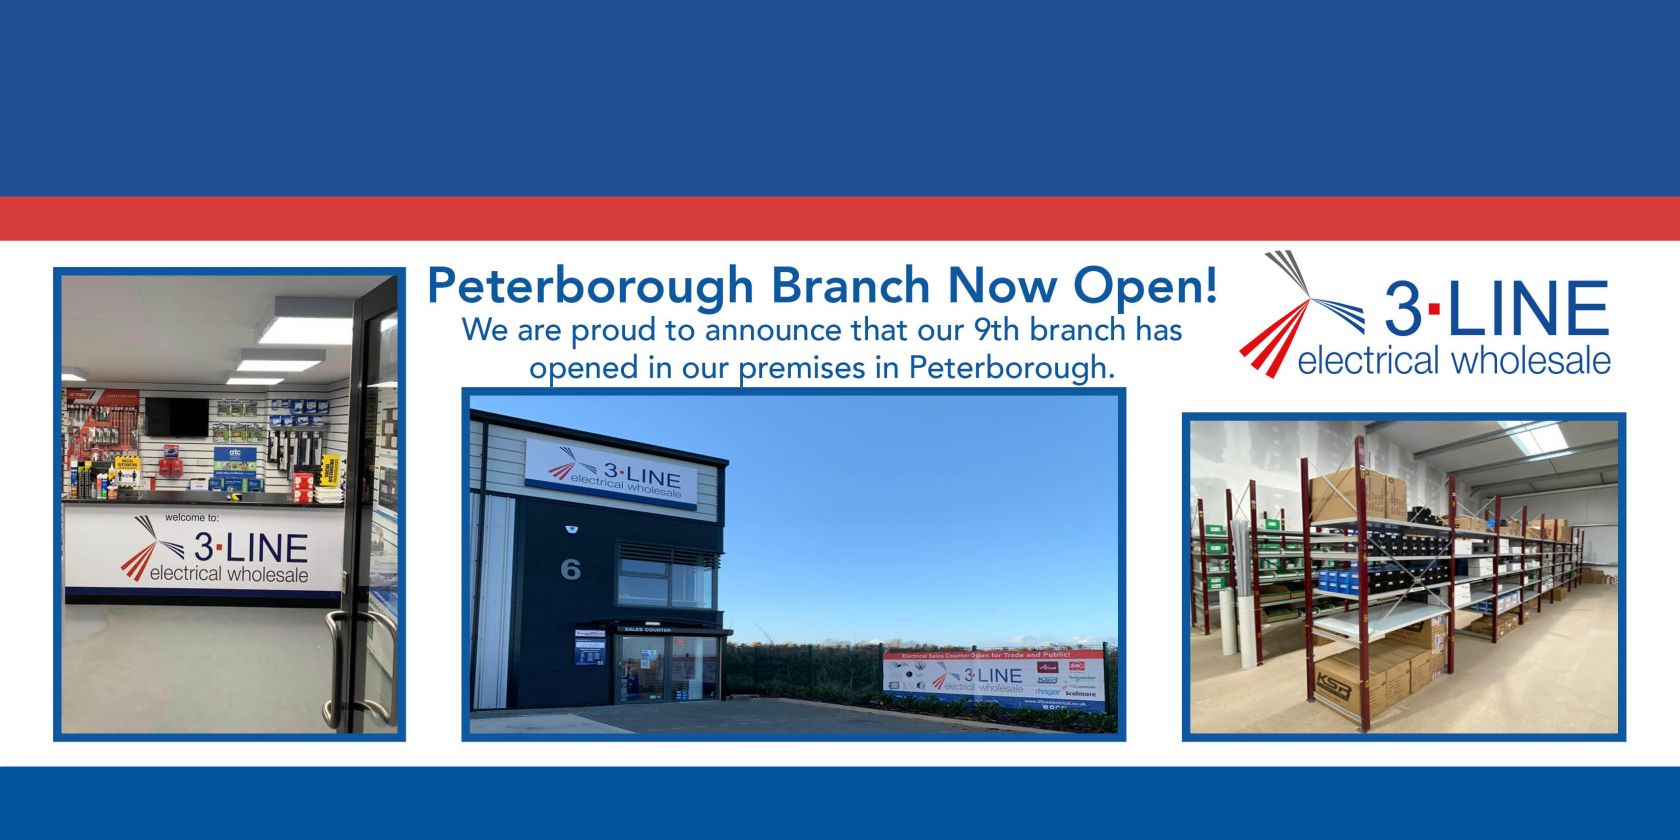 Peterborough Now Open! 4A